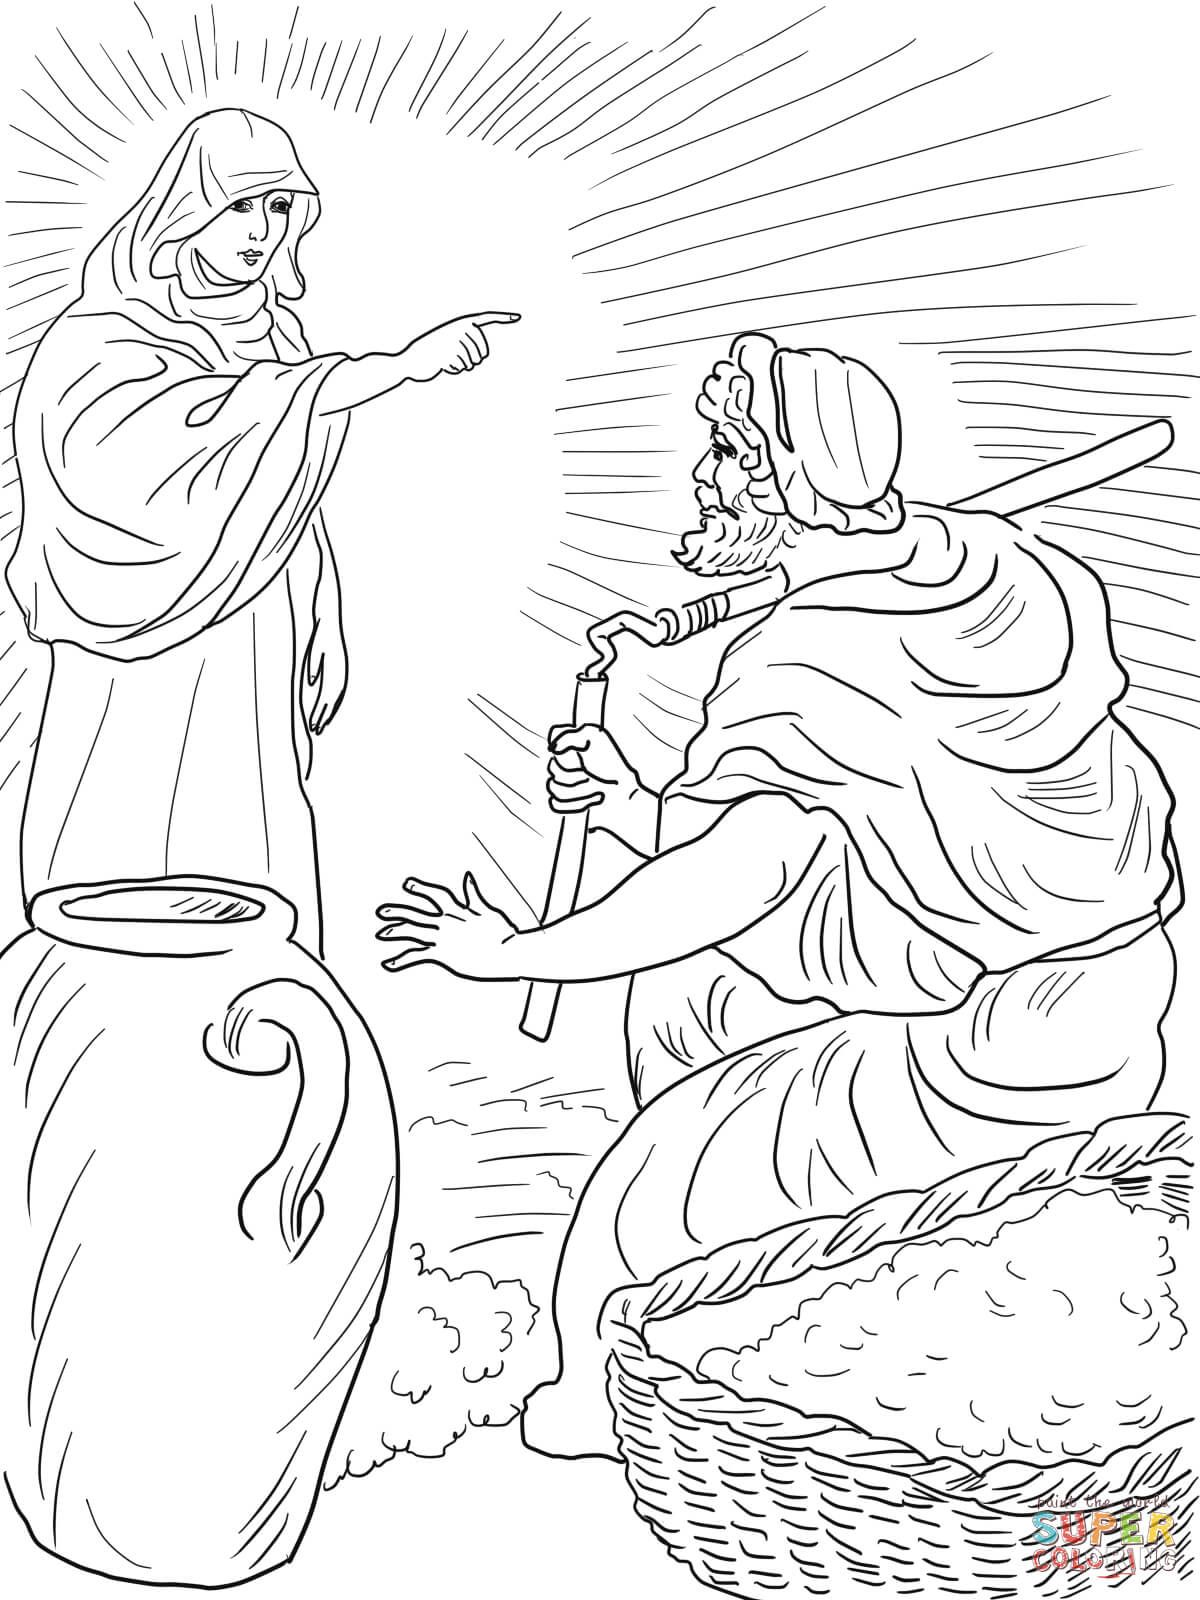 Gods Angel Called Gideon Coloring Page From Judge Category Select 22041 Printable Crafts Of Cartoons Nature Animals Bible And Many More